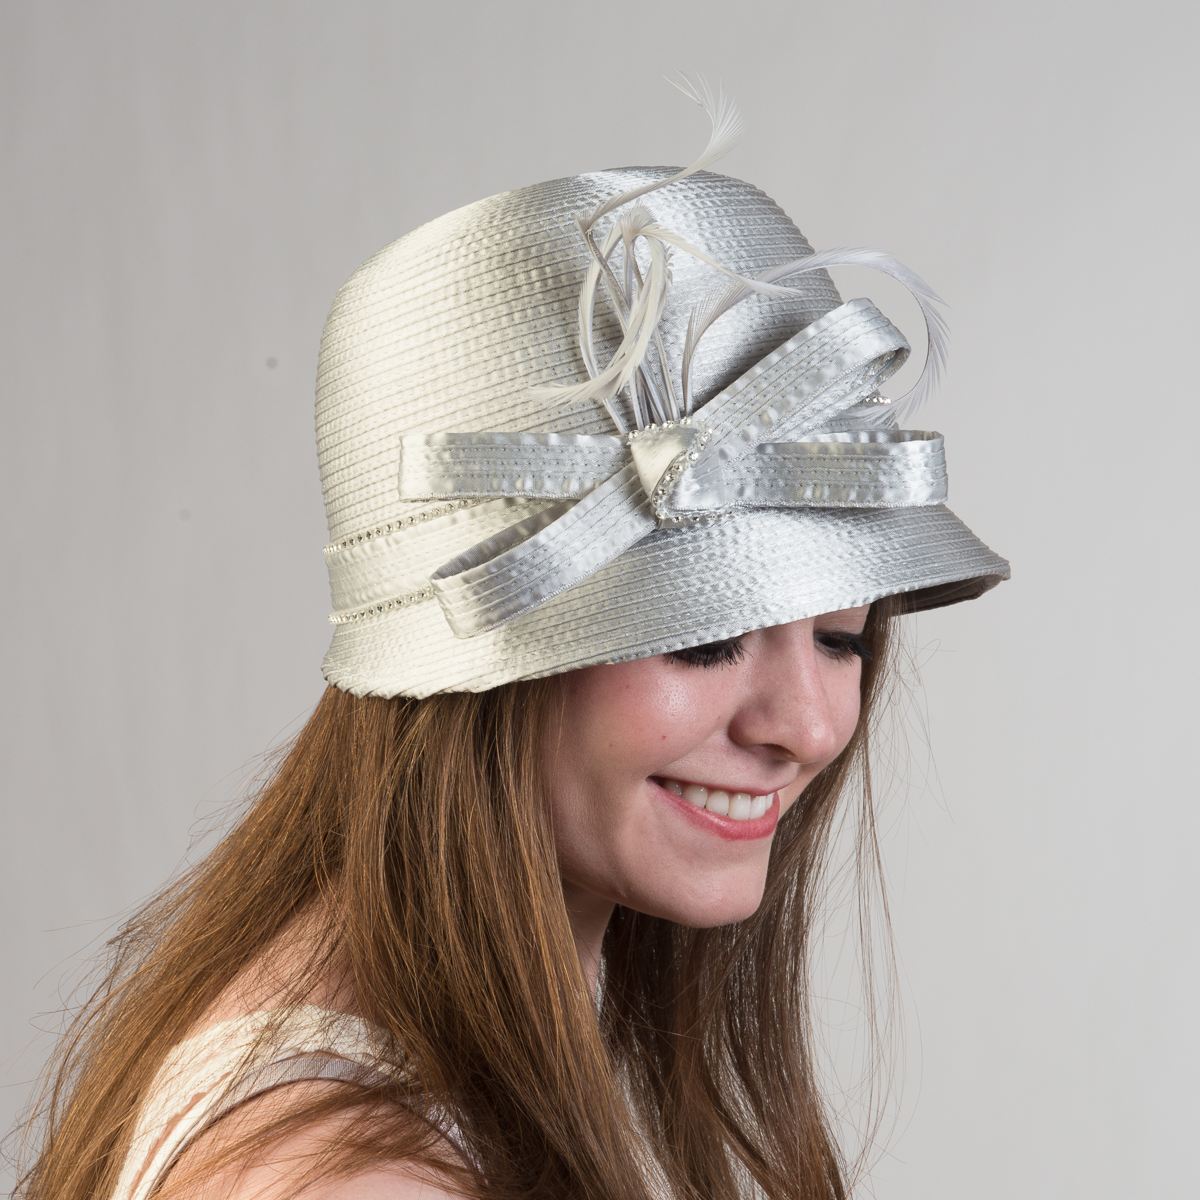 Silver Small Satin Ribbon Cloche Hats-321775-SV- Sun Yorkos  8654d1d791f